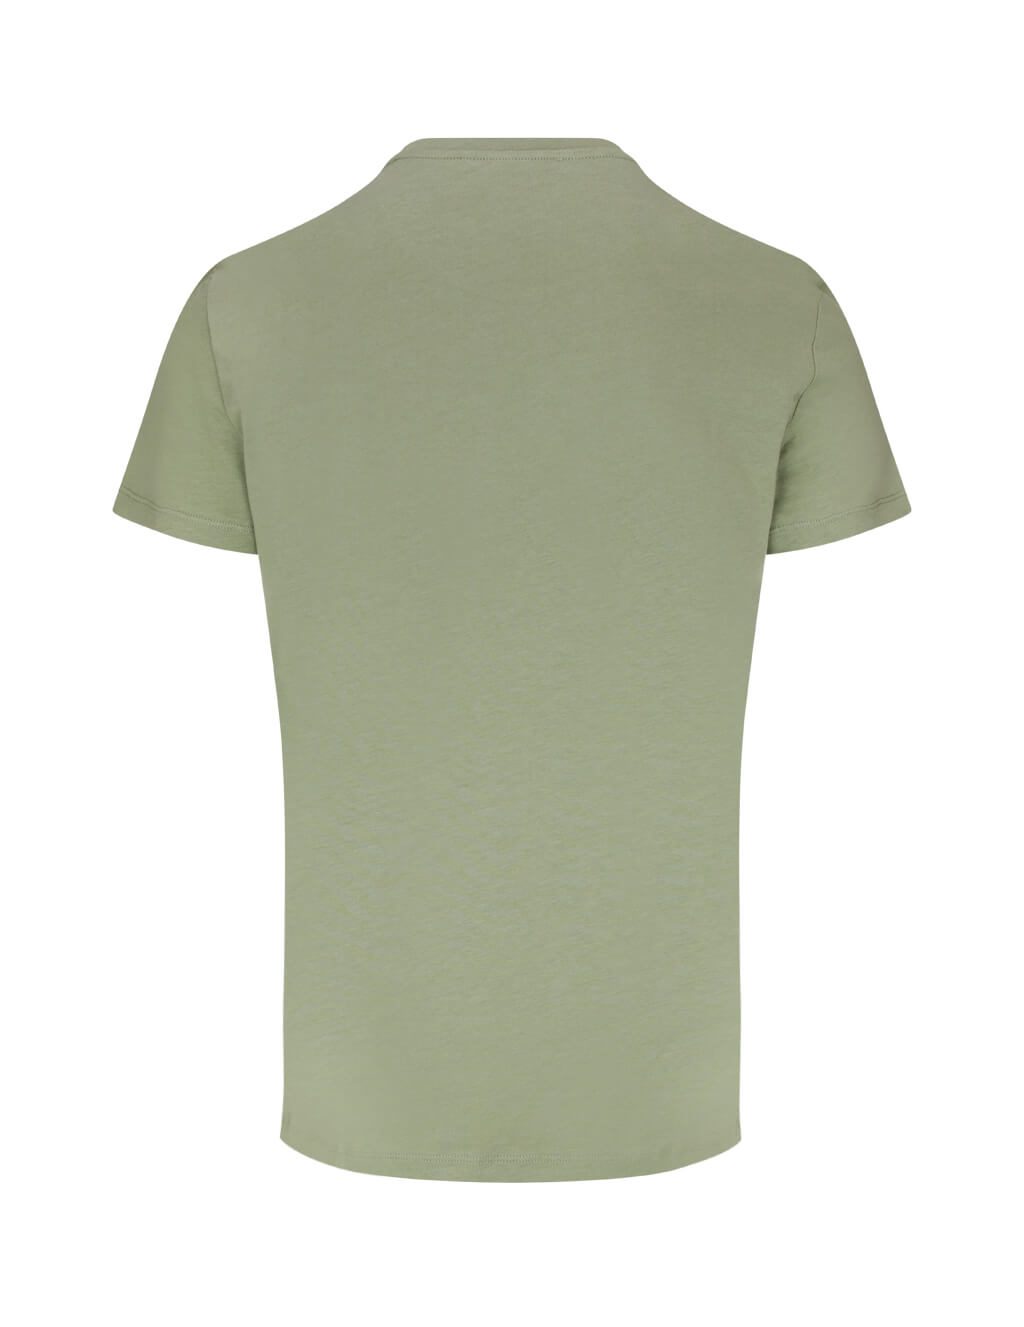 Balmain Men's Khaki Flock Cotton T-Shirt TH11601I2017UA